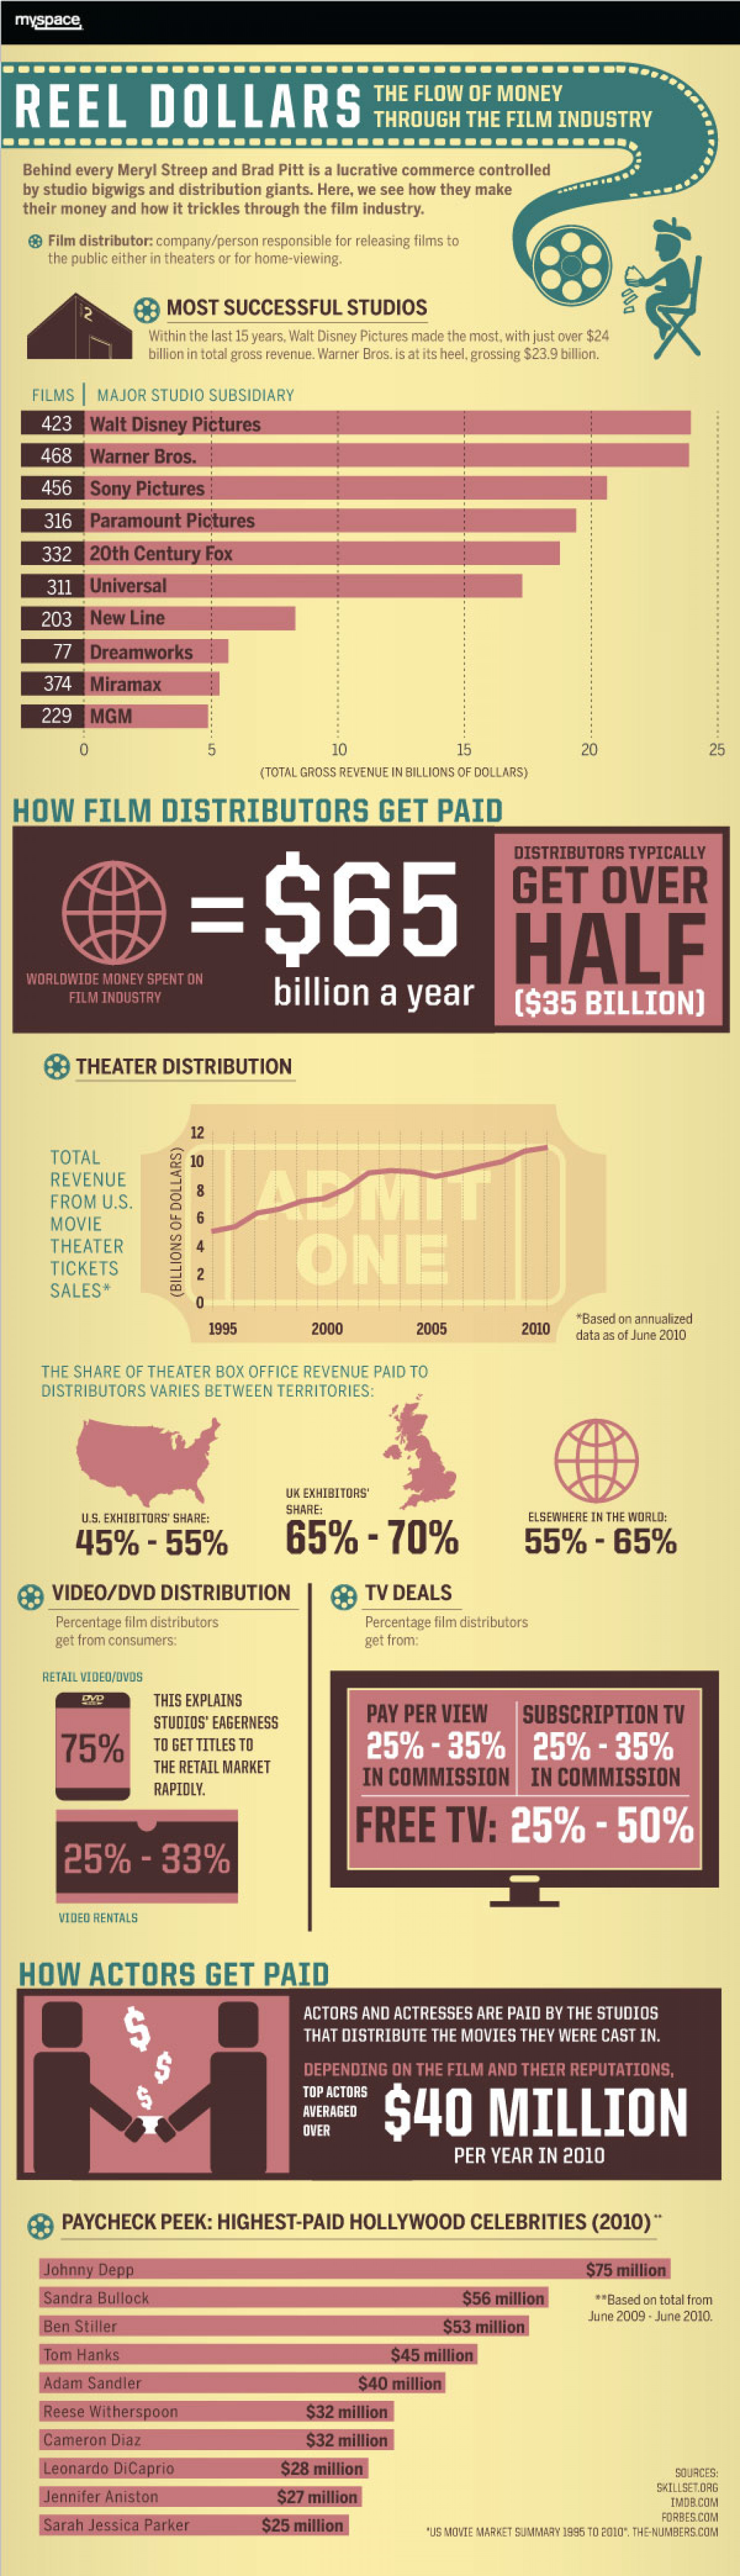 Reel Dollars Infographic